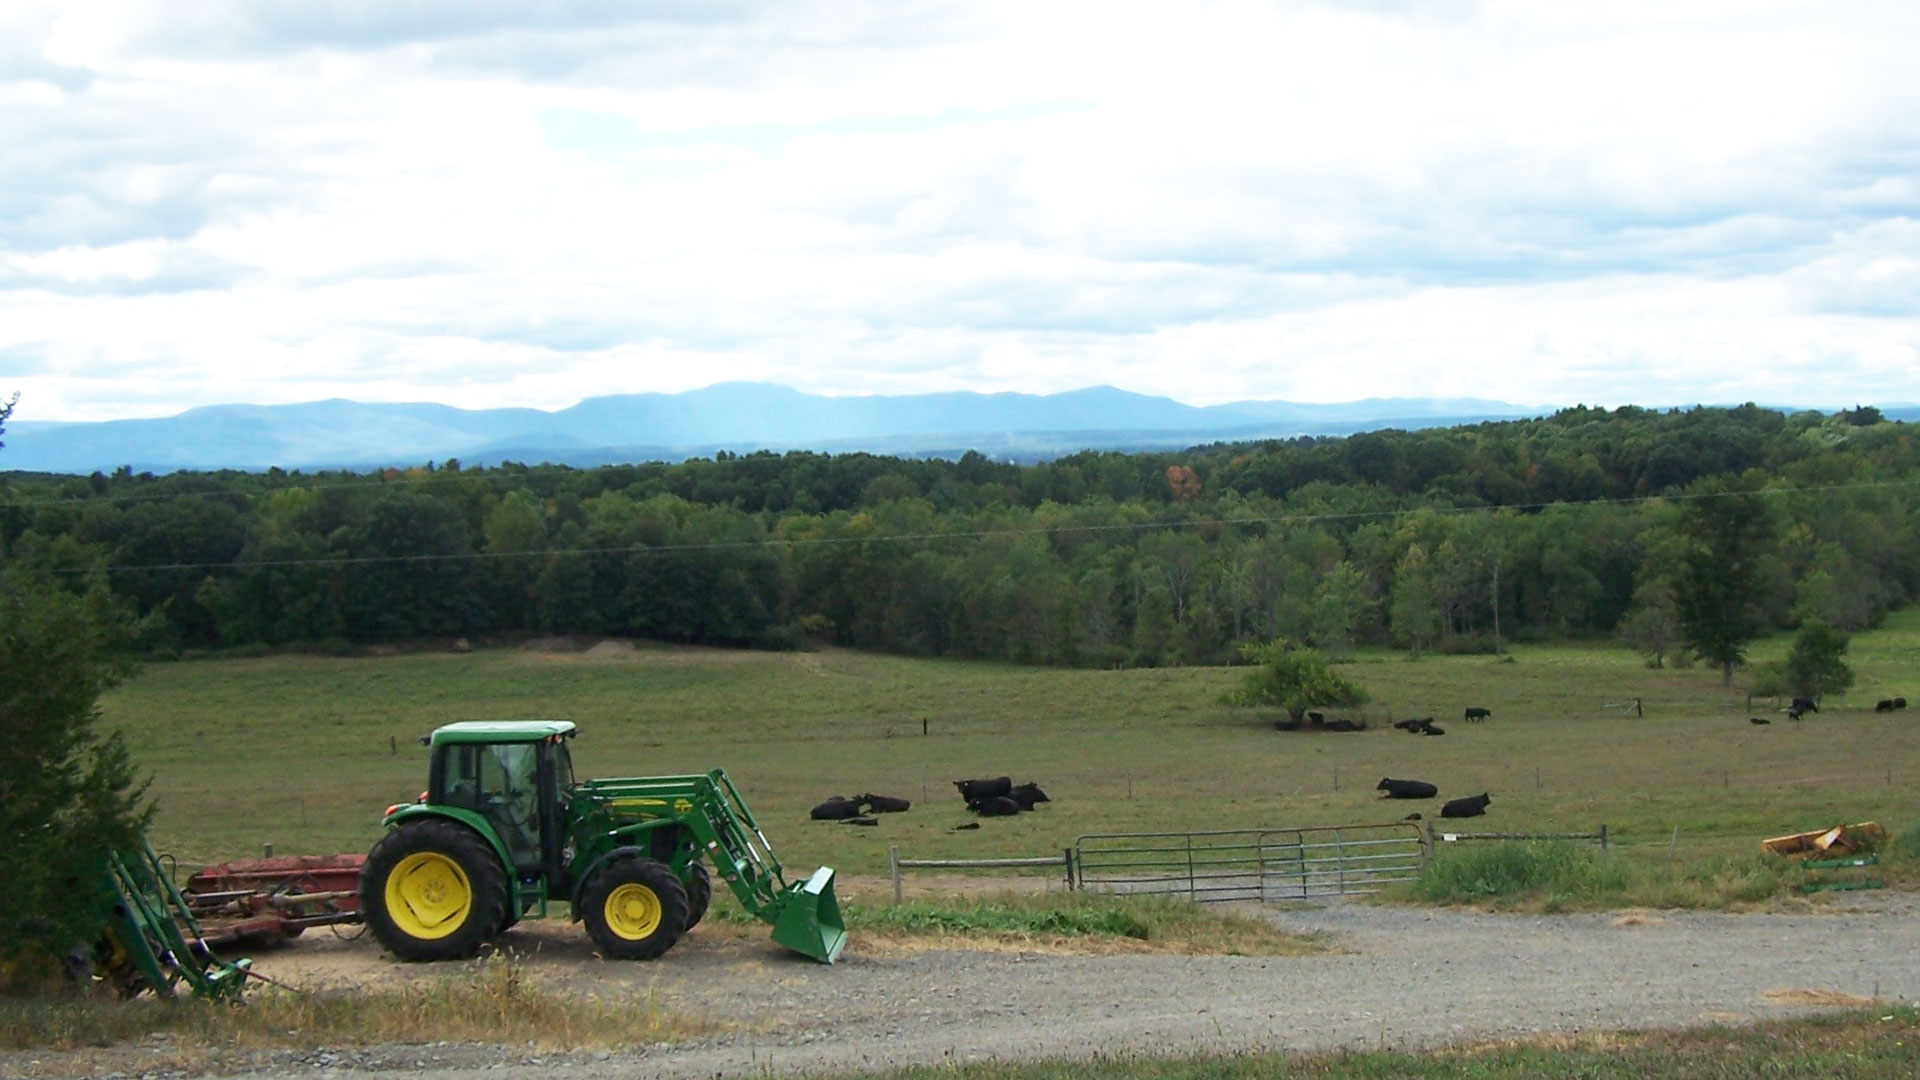 Tractor, field and cows with mountains in the background.